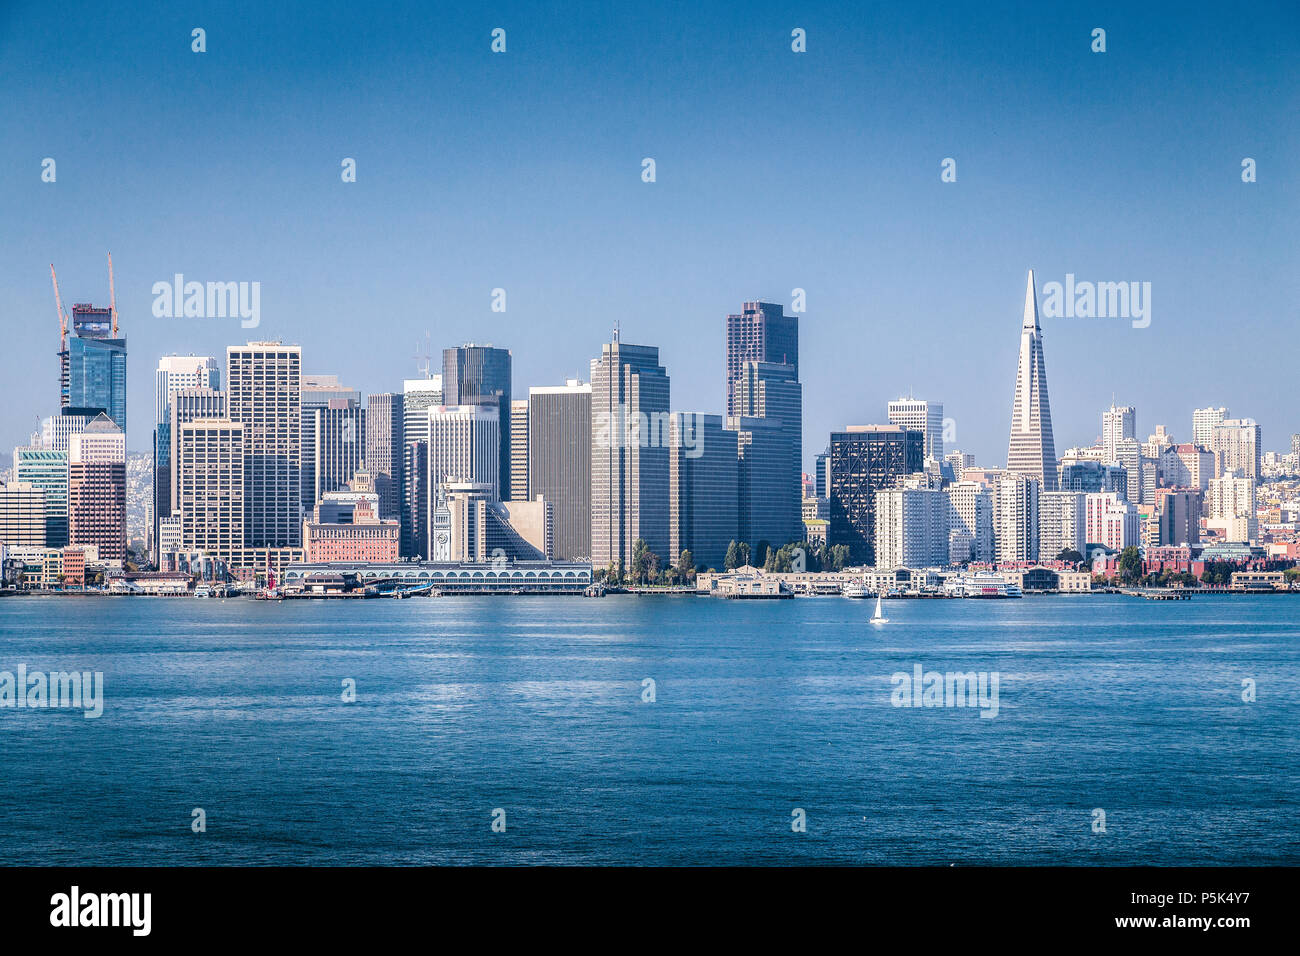 Classic panoramic view of San Francisco skyline on a beautiful sunny day with blue sky in summer, San Francisco Bay Area, California, USA - Stock Image